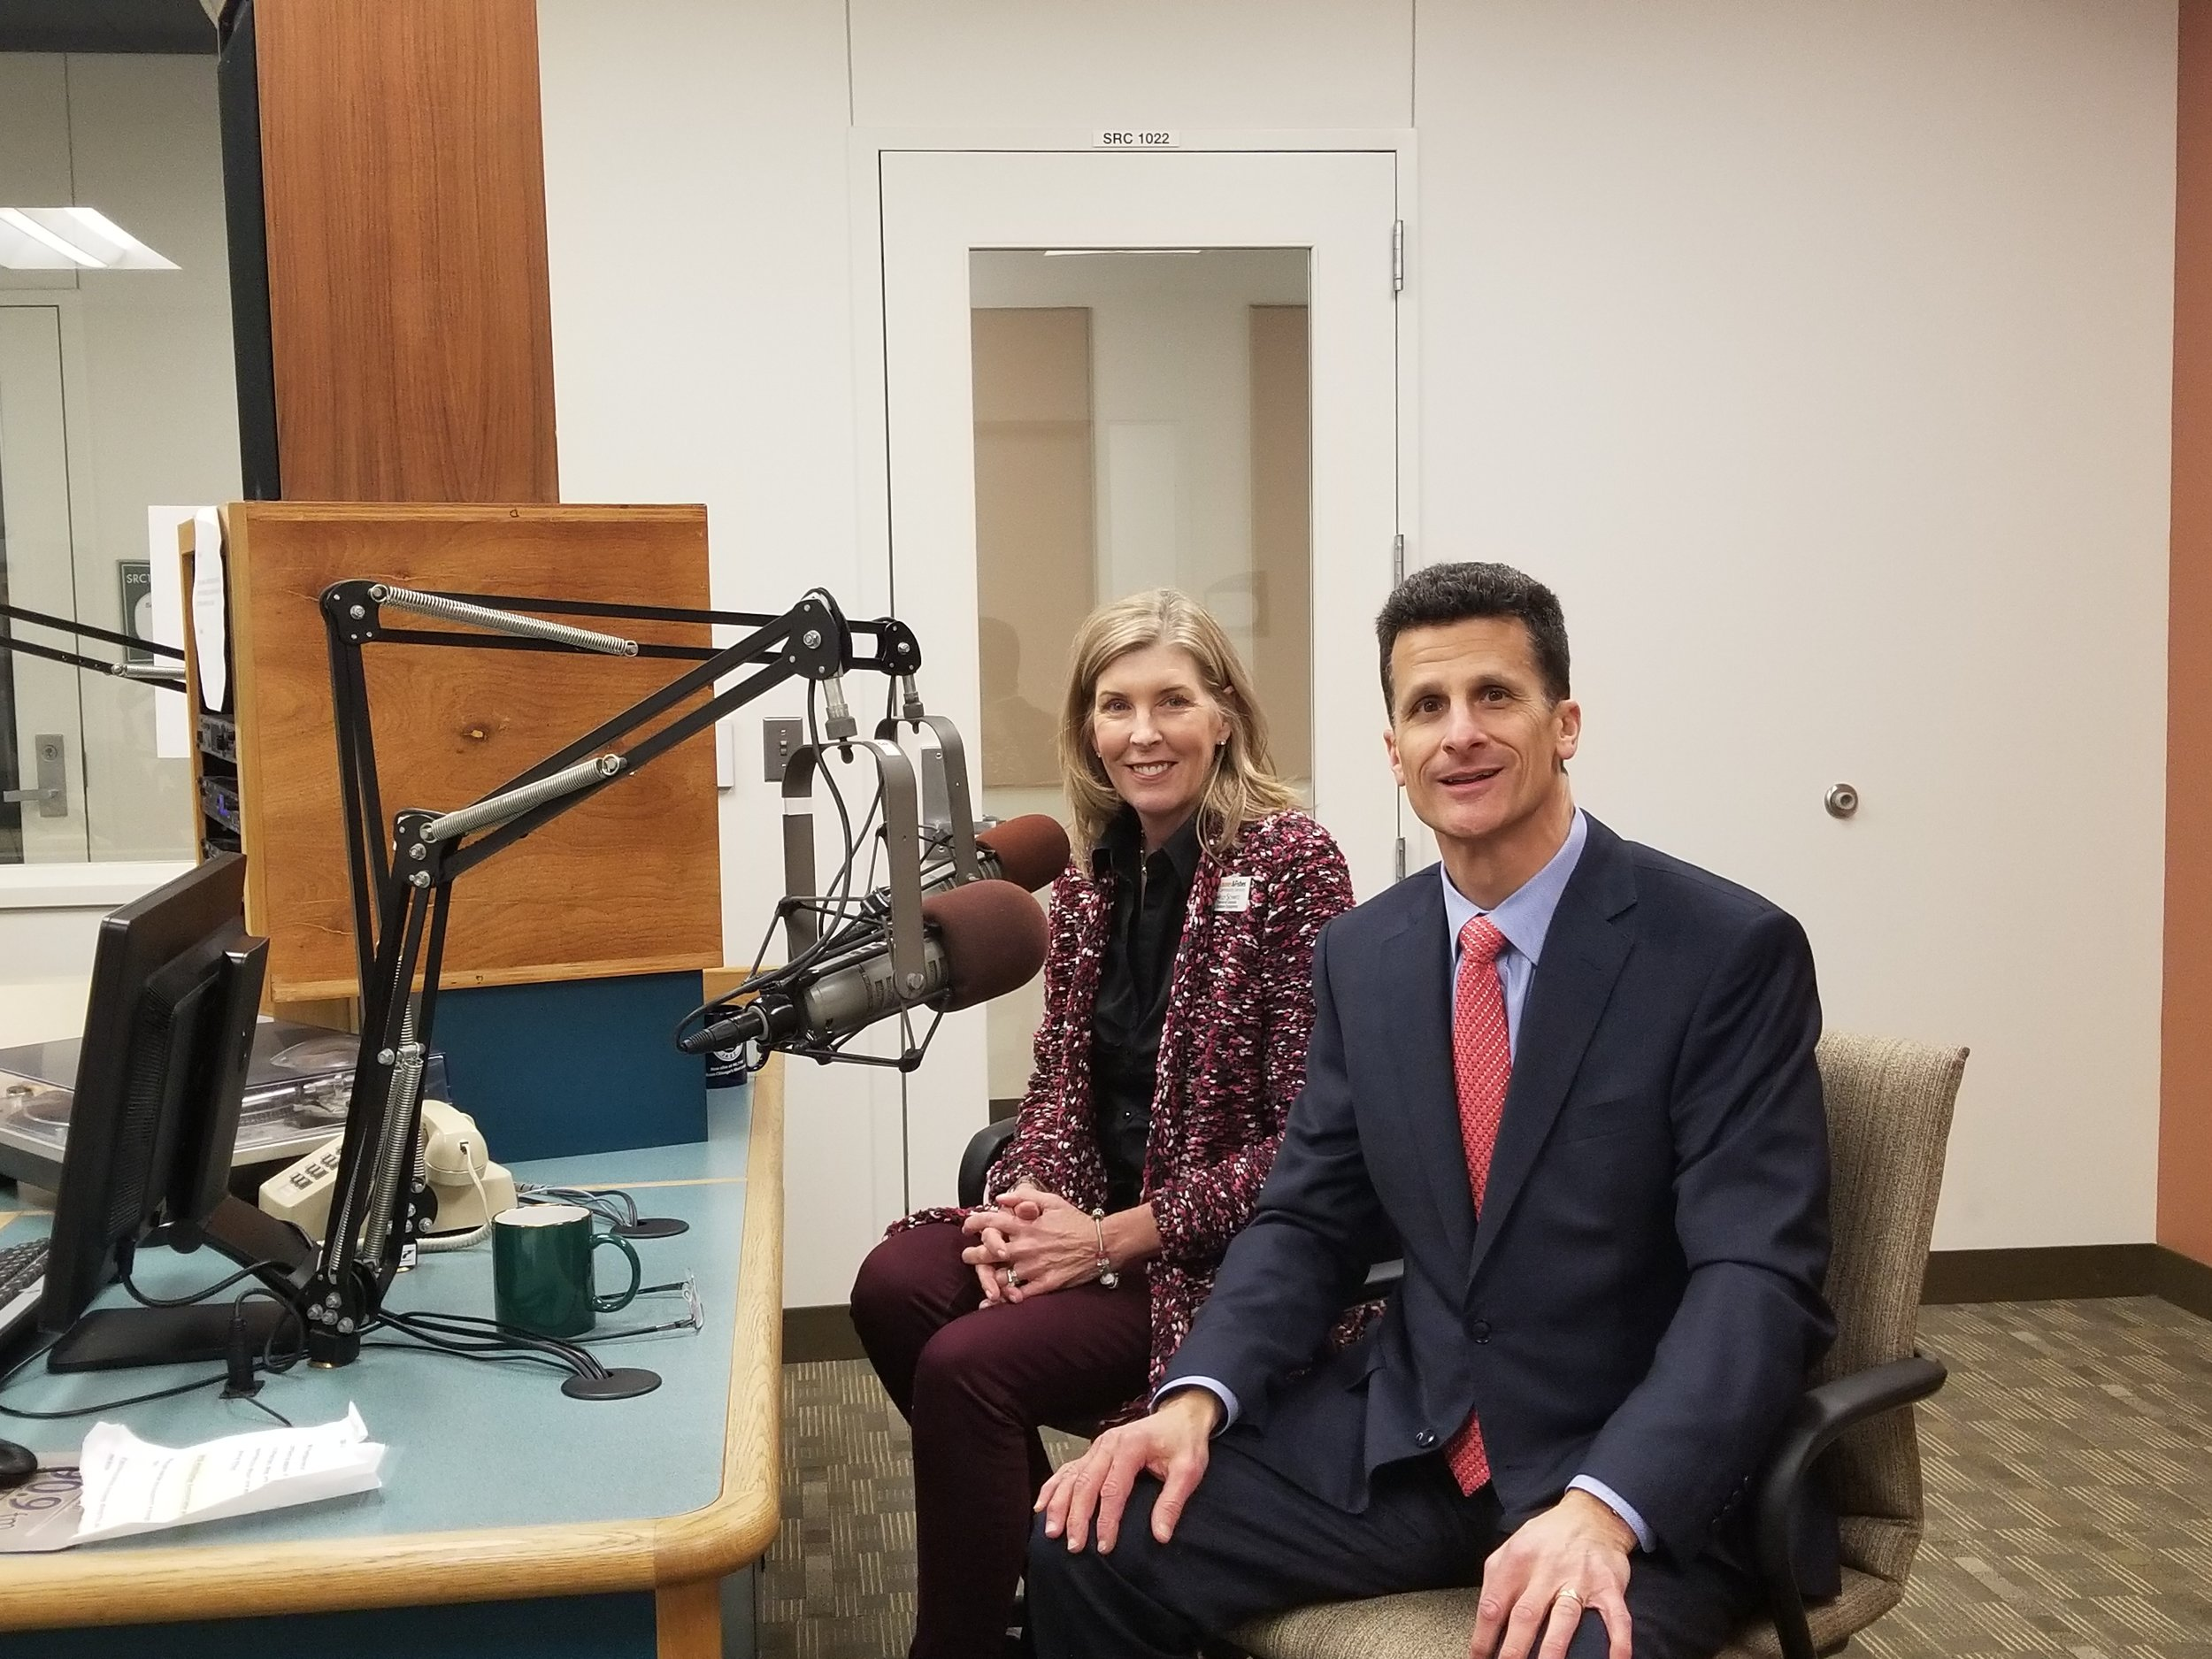 Loaves & Fishes CEO Mike Havala (right) and Director of Corporate & Volunteer Engagement Shelly Schmitz visited the WDCB studios to talk with Doing Good segment host Gary Zidek.